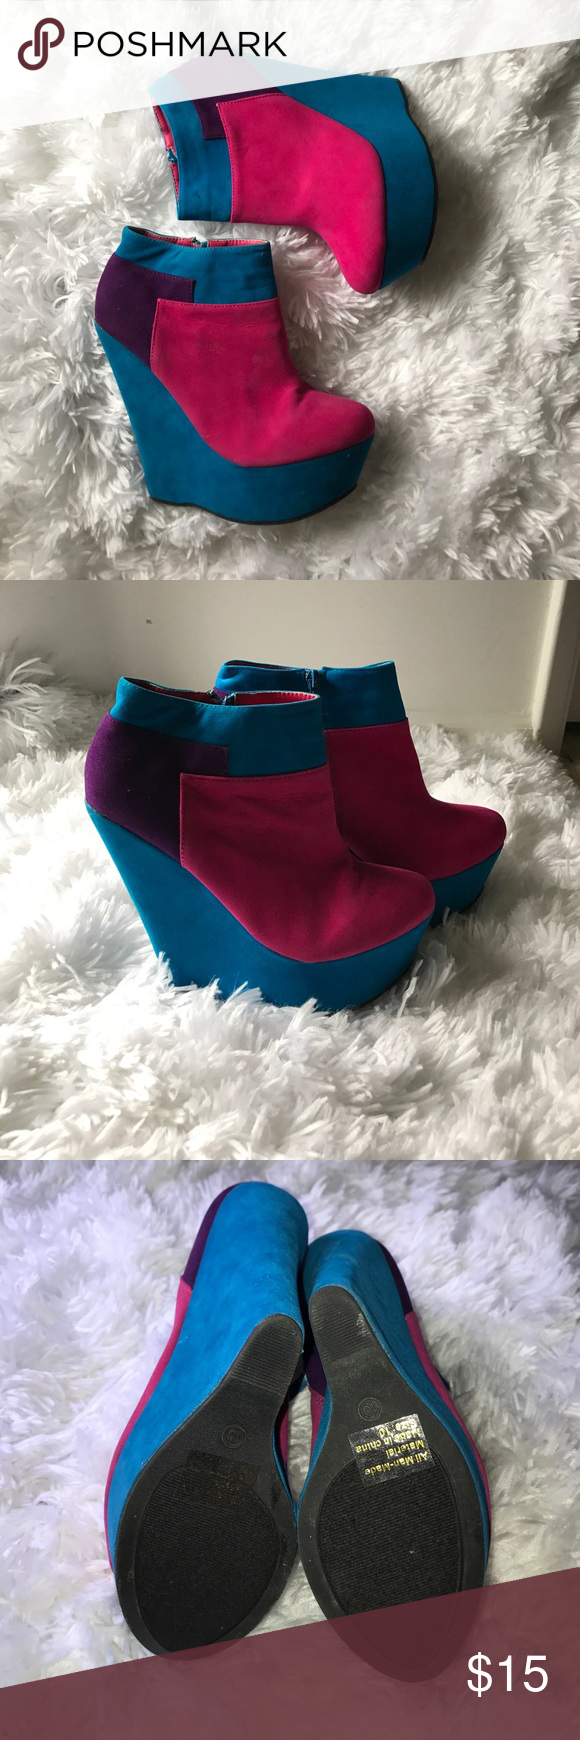 63375b66395 Colorful Wedge boots Block Wedge Heel Bootie Kiss   Tell Shoes Wedges